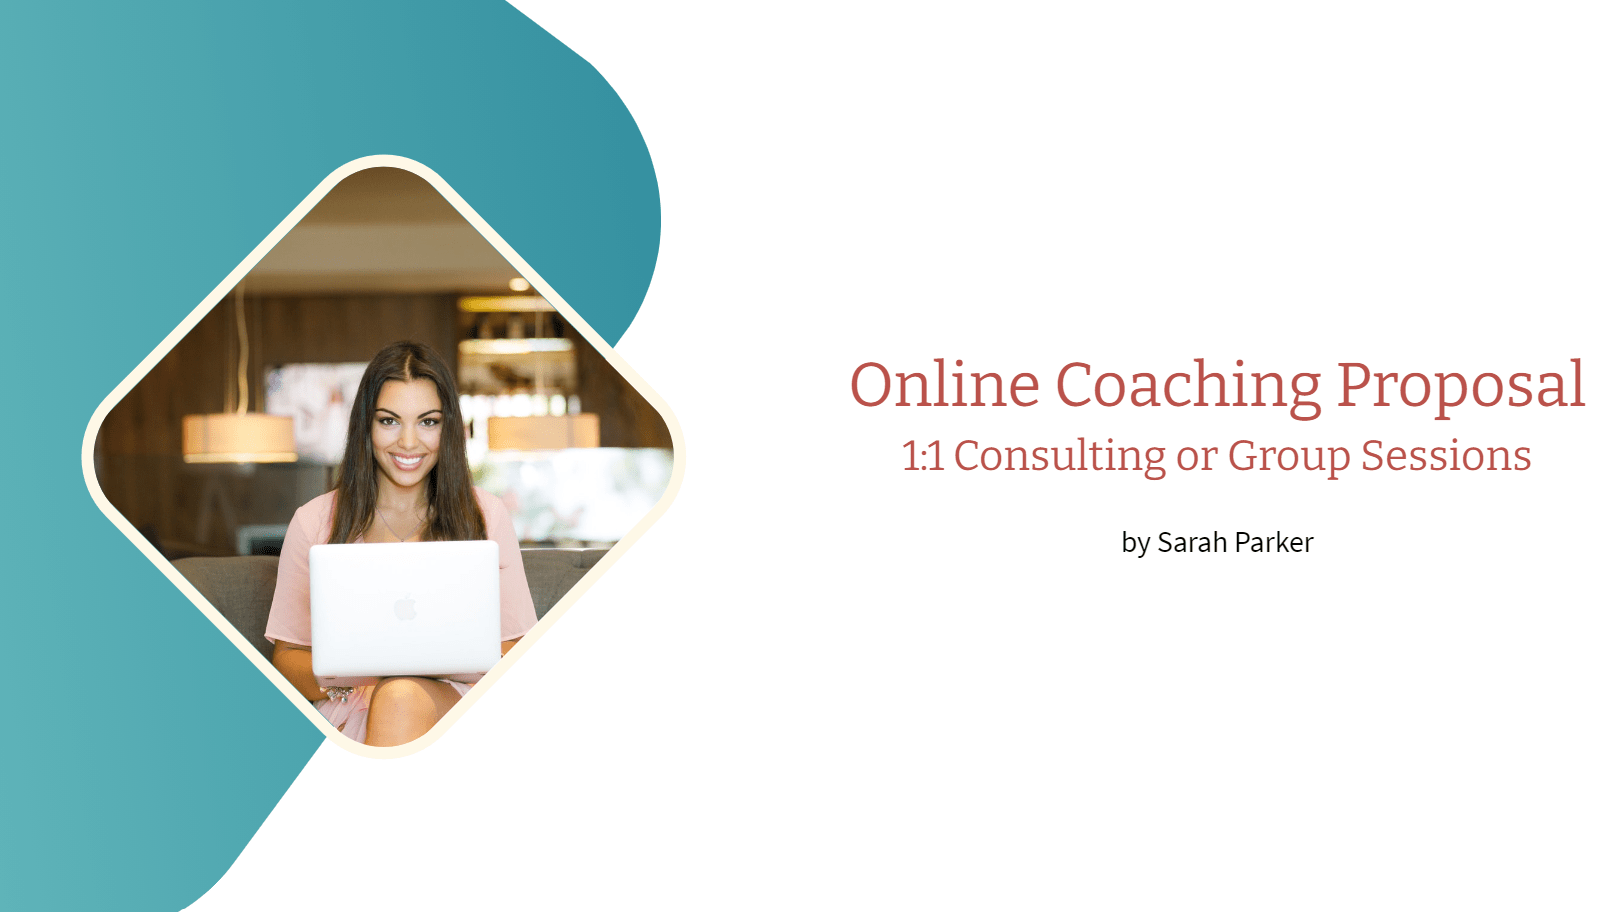 An online coaching proposal template is prepared for coaches that are looking for templates to advertise and generate leads. By using this template coaches can introduce their services, offer their packages and collect contact information of the possible clients.